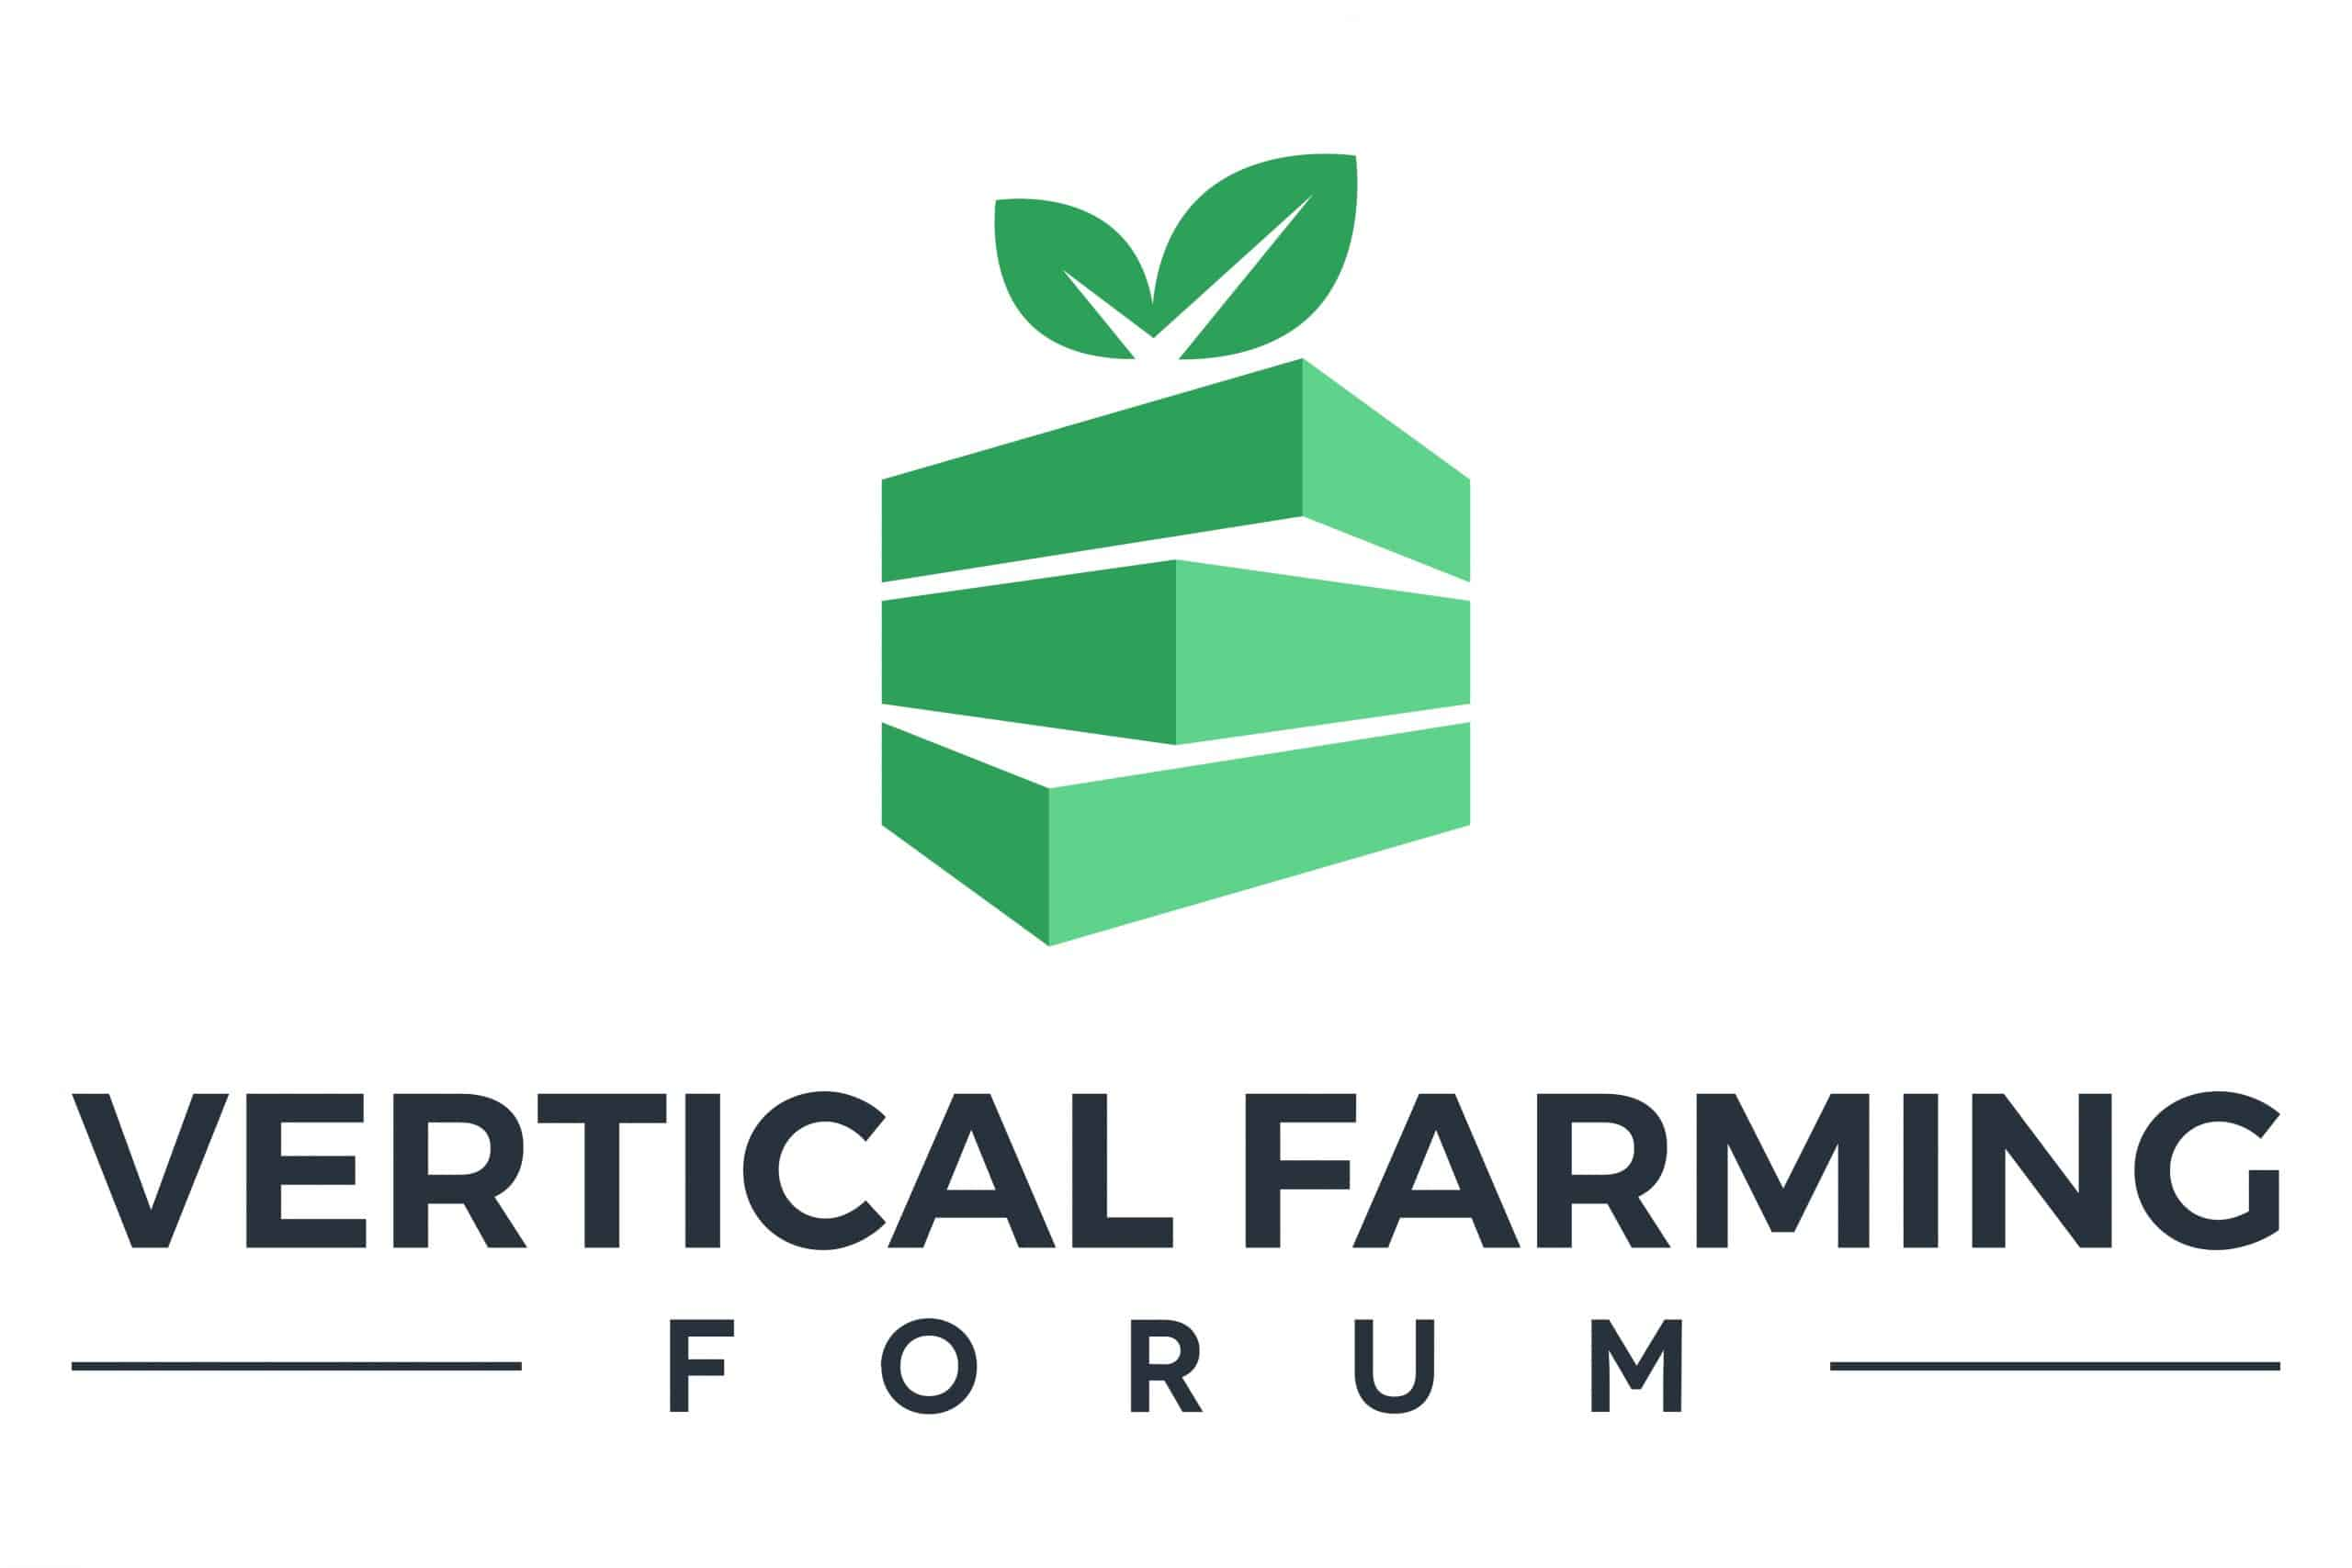 vertical farming logo